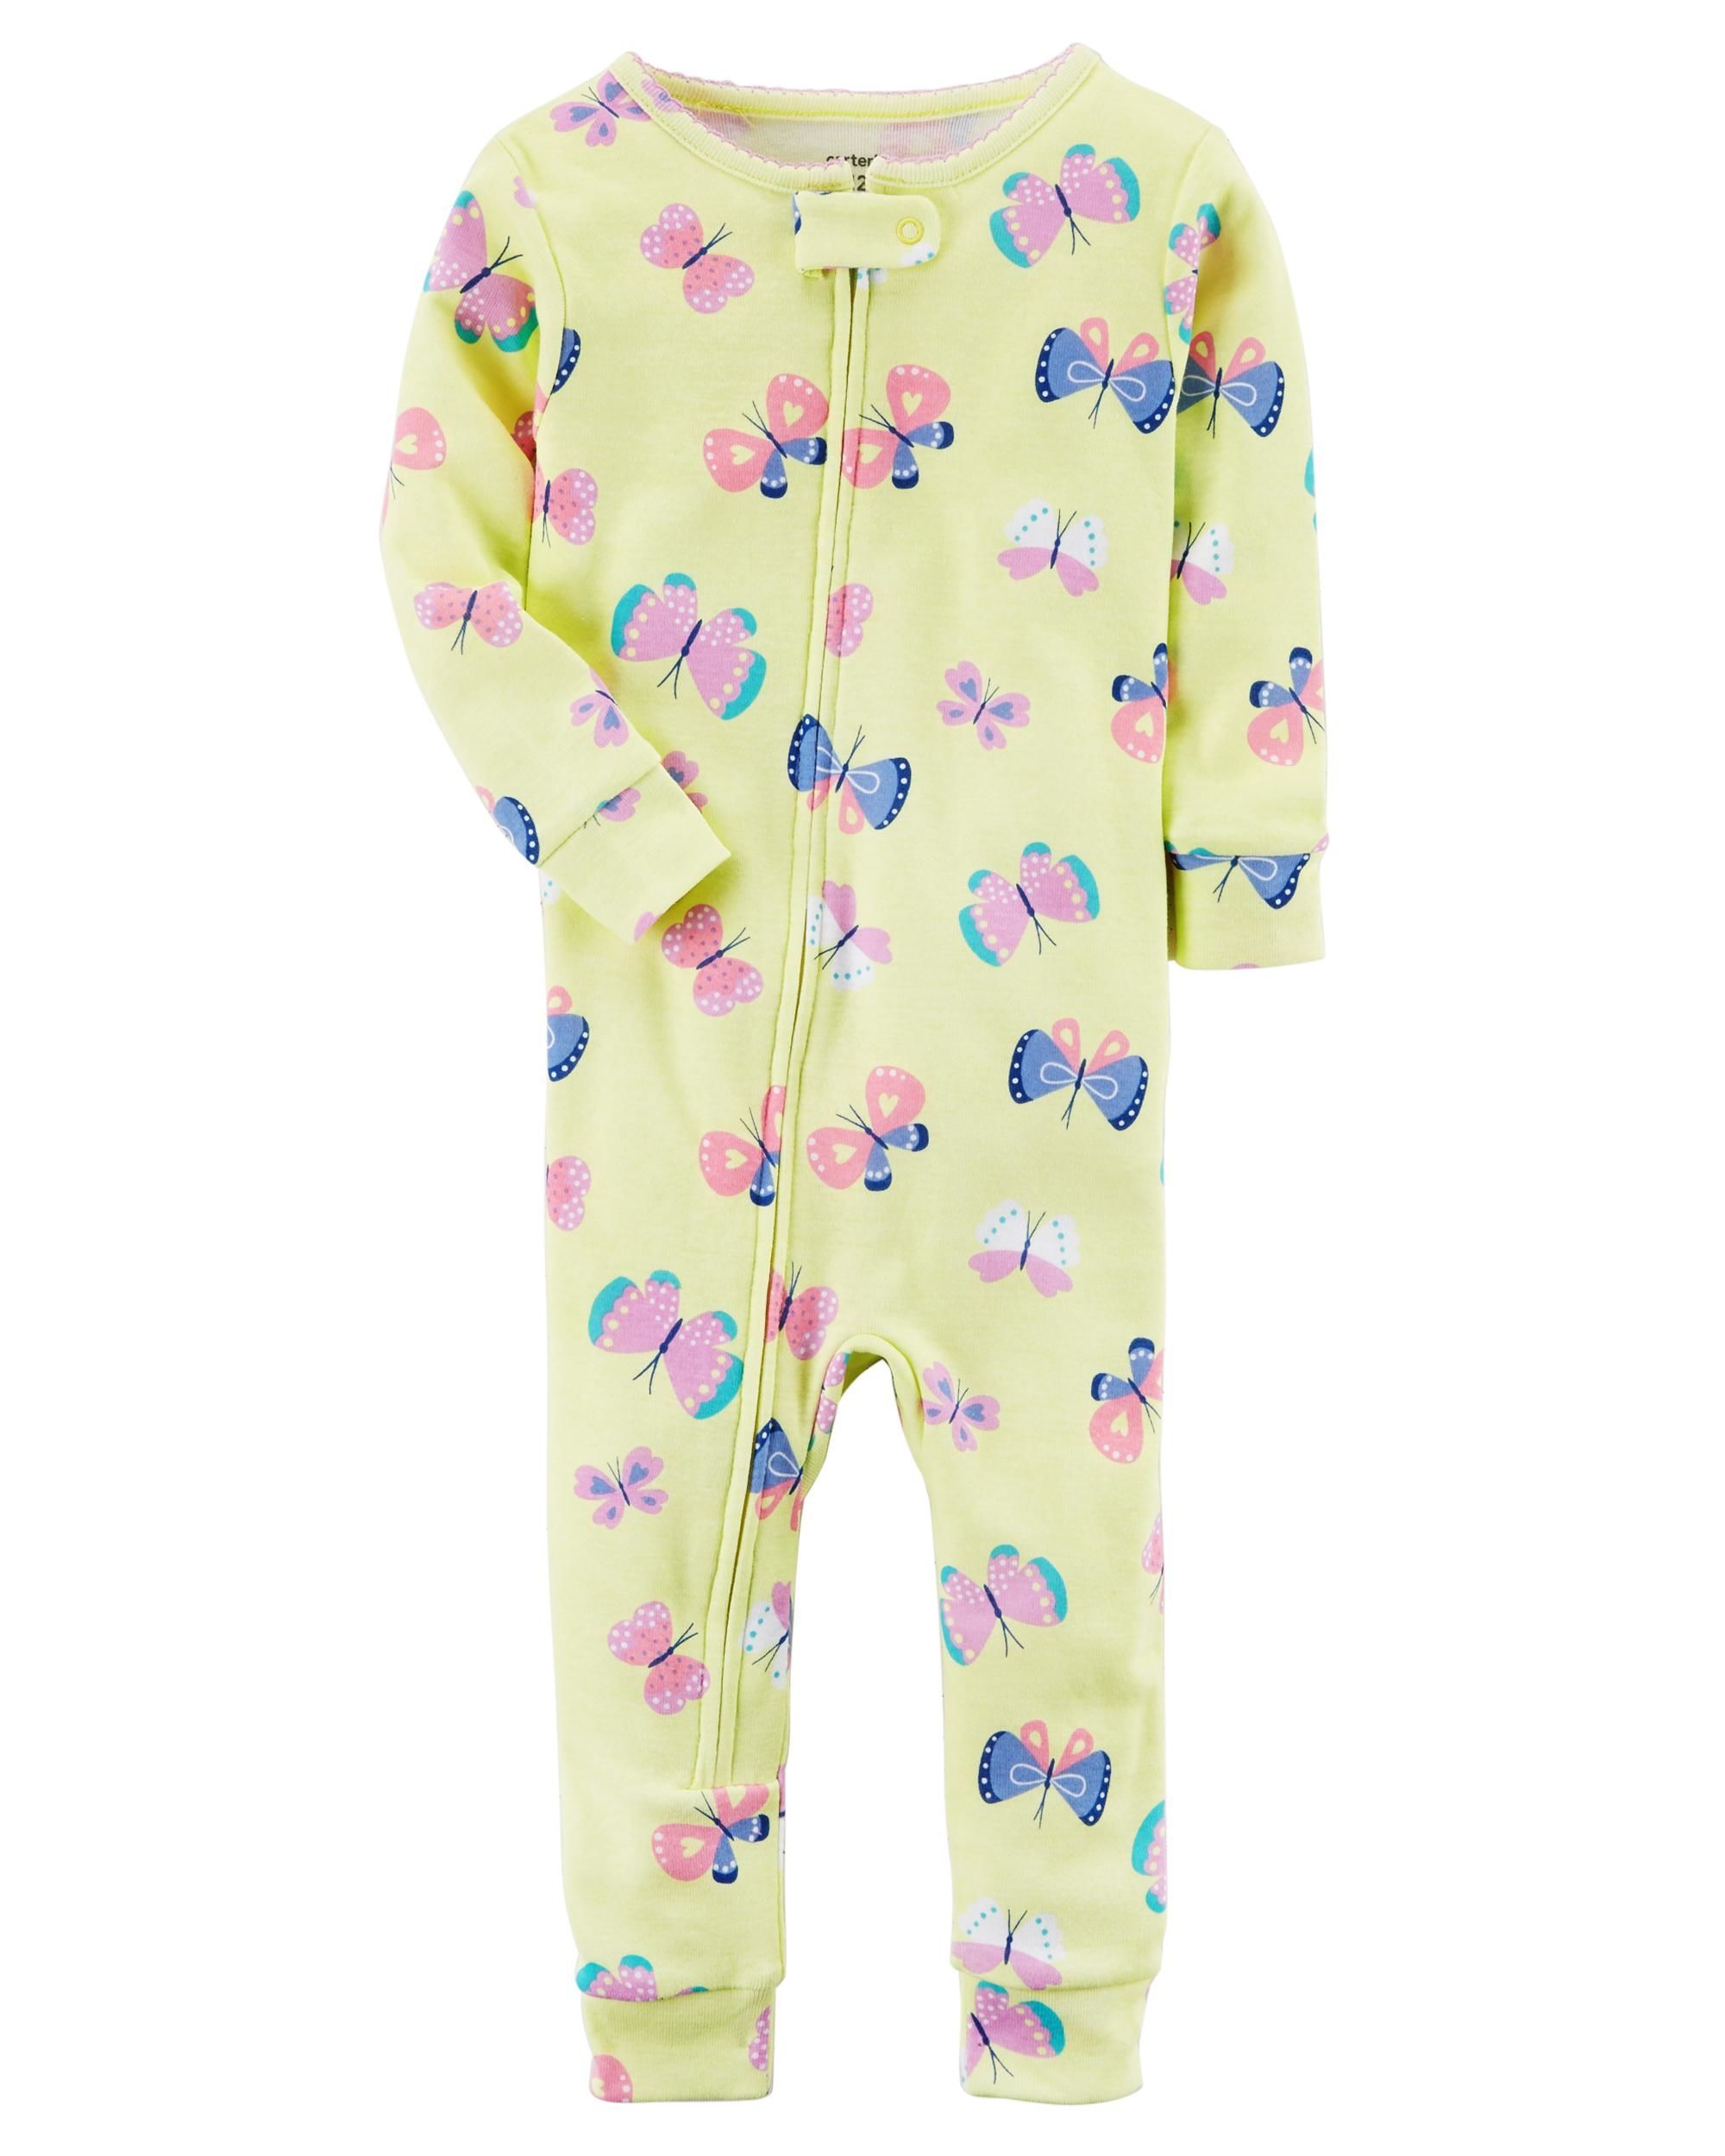 fbf3a3c10369 Toddler Girl 1-Piece Snug Fit Cotton Footless PJs